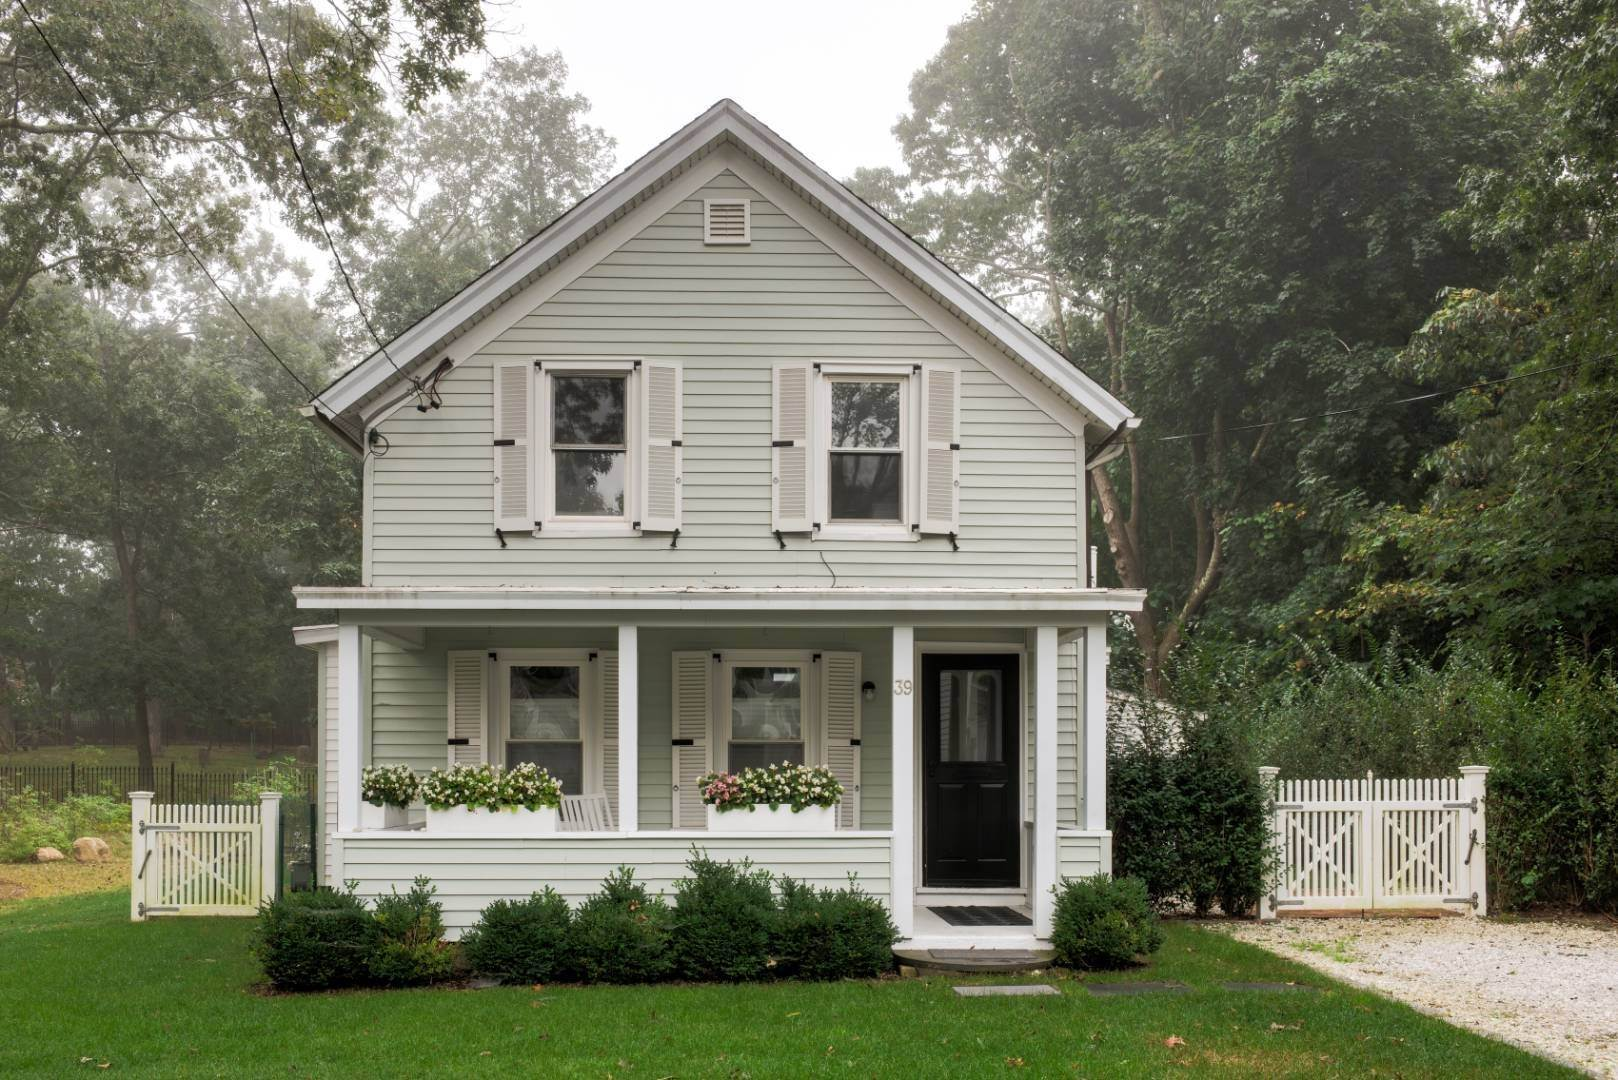 Single Family Home for Sale at Welcome To The Historic Villiage Of Sag Harbor 39 Hamilton St, Sag Harbor, NY 11963